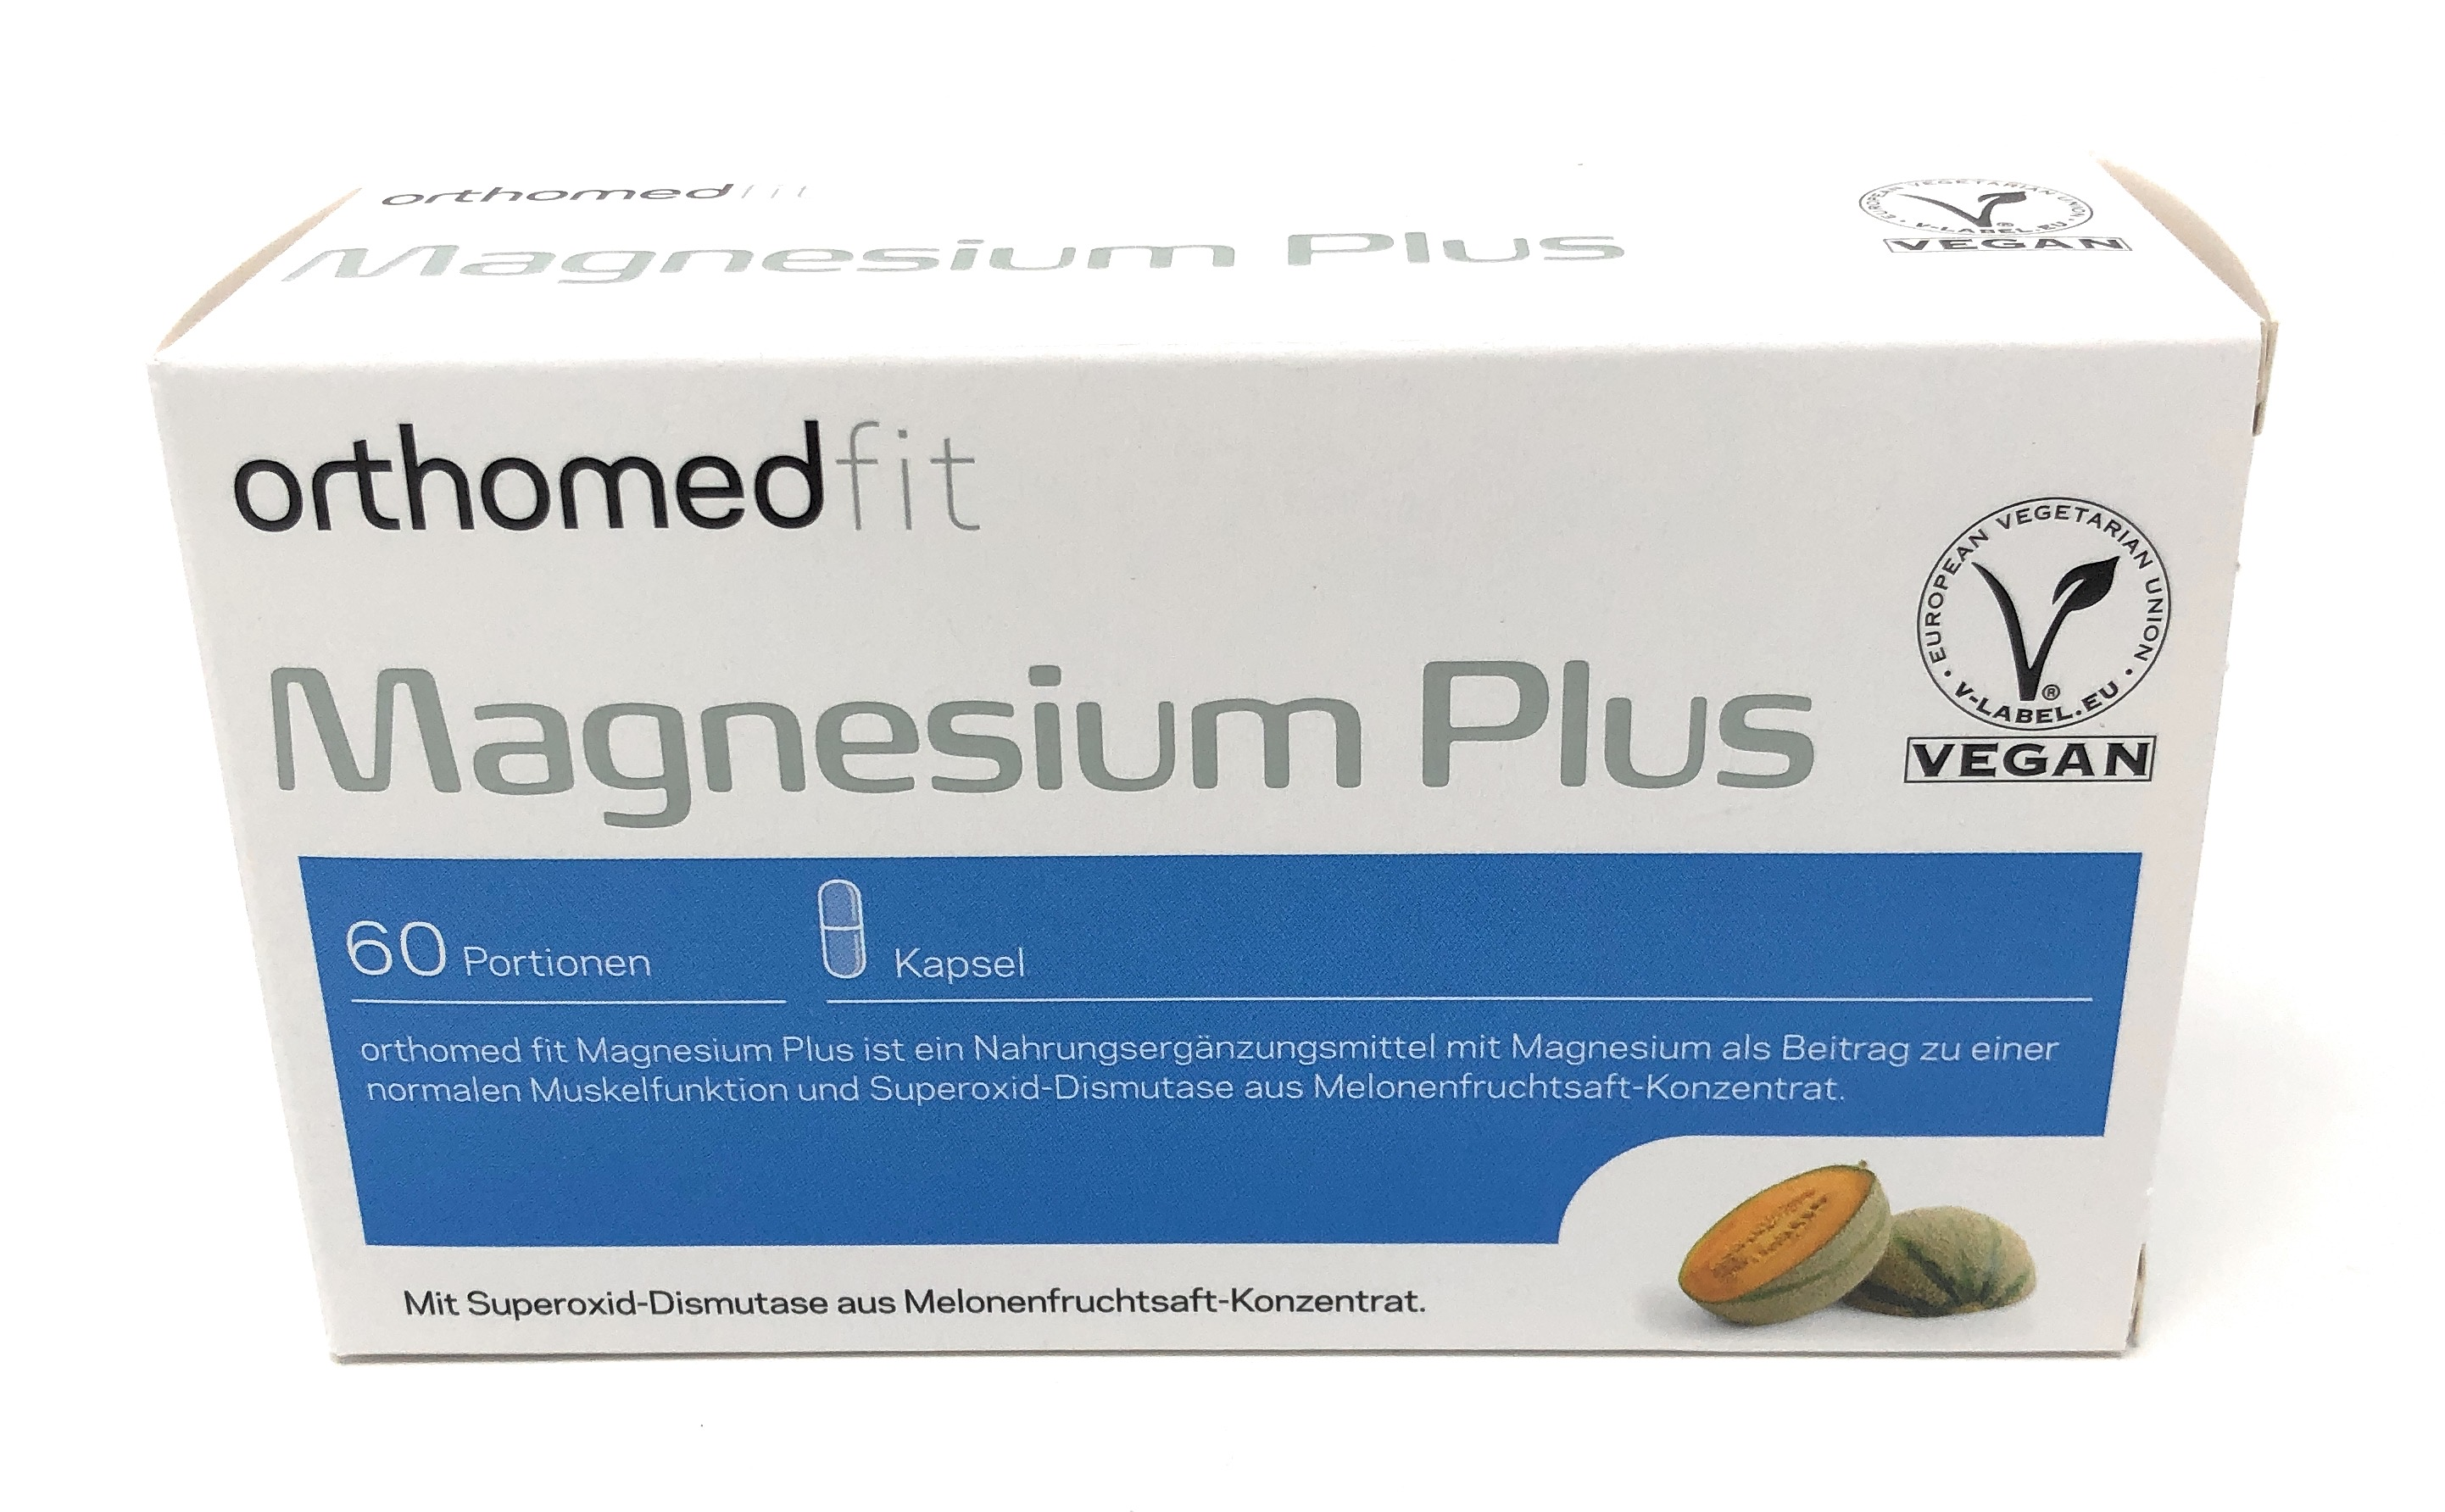 orthomed orthomed fit Magnesium Plus 60 veg. Kapseln (41,4g) (vegan)